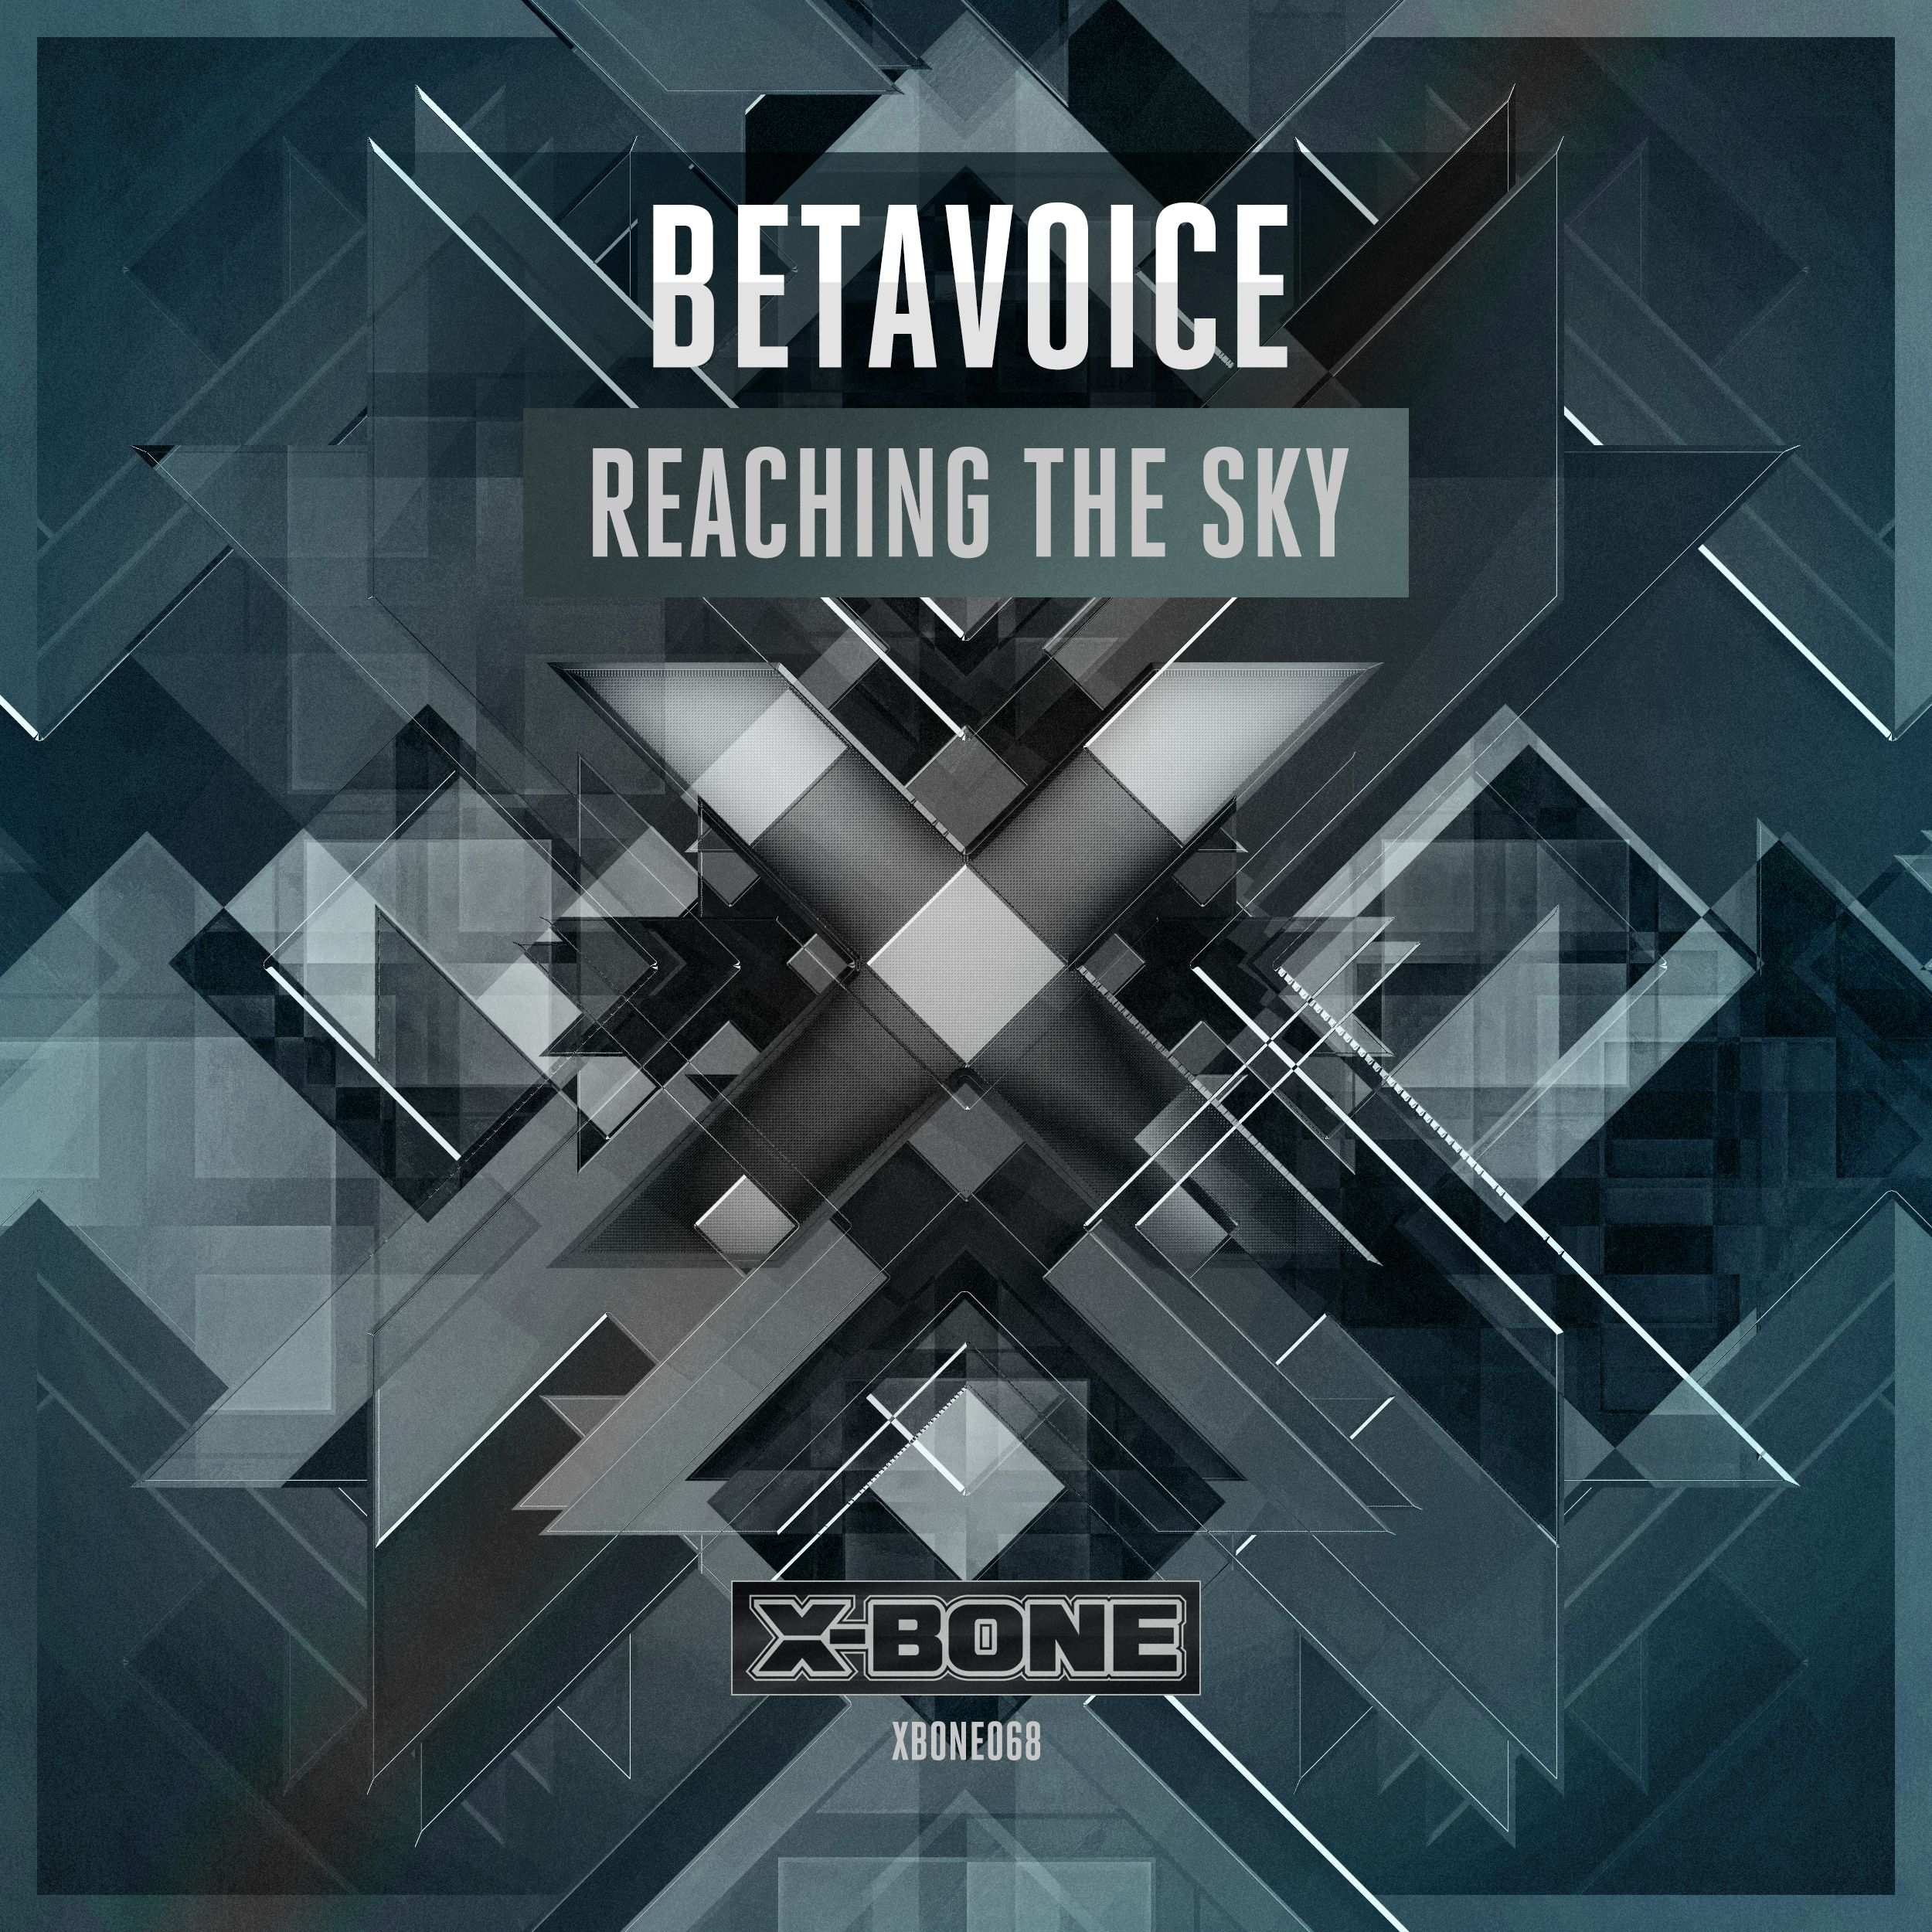 Betavoice - Reaching The Sky